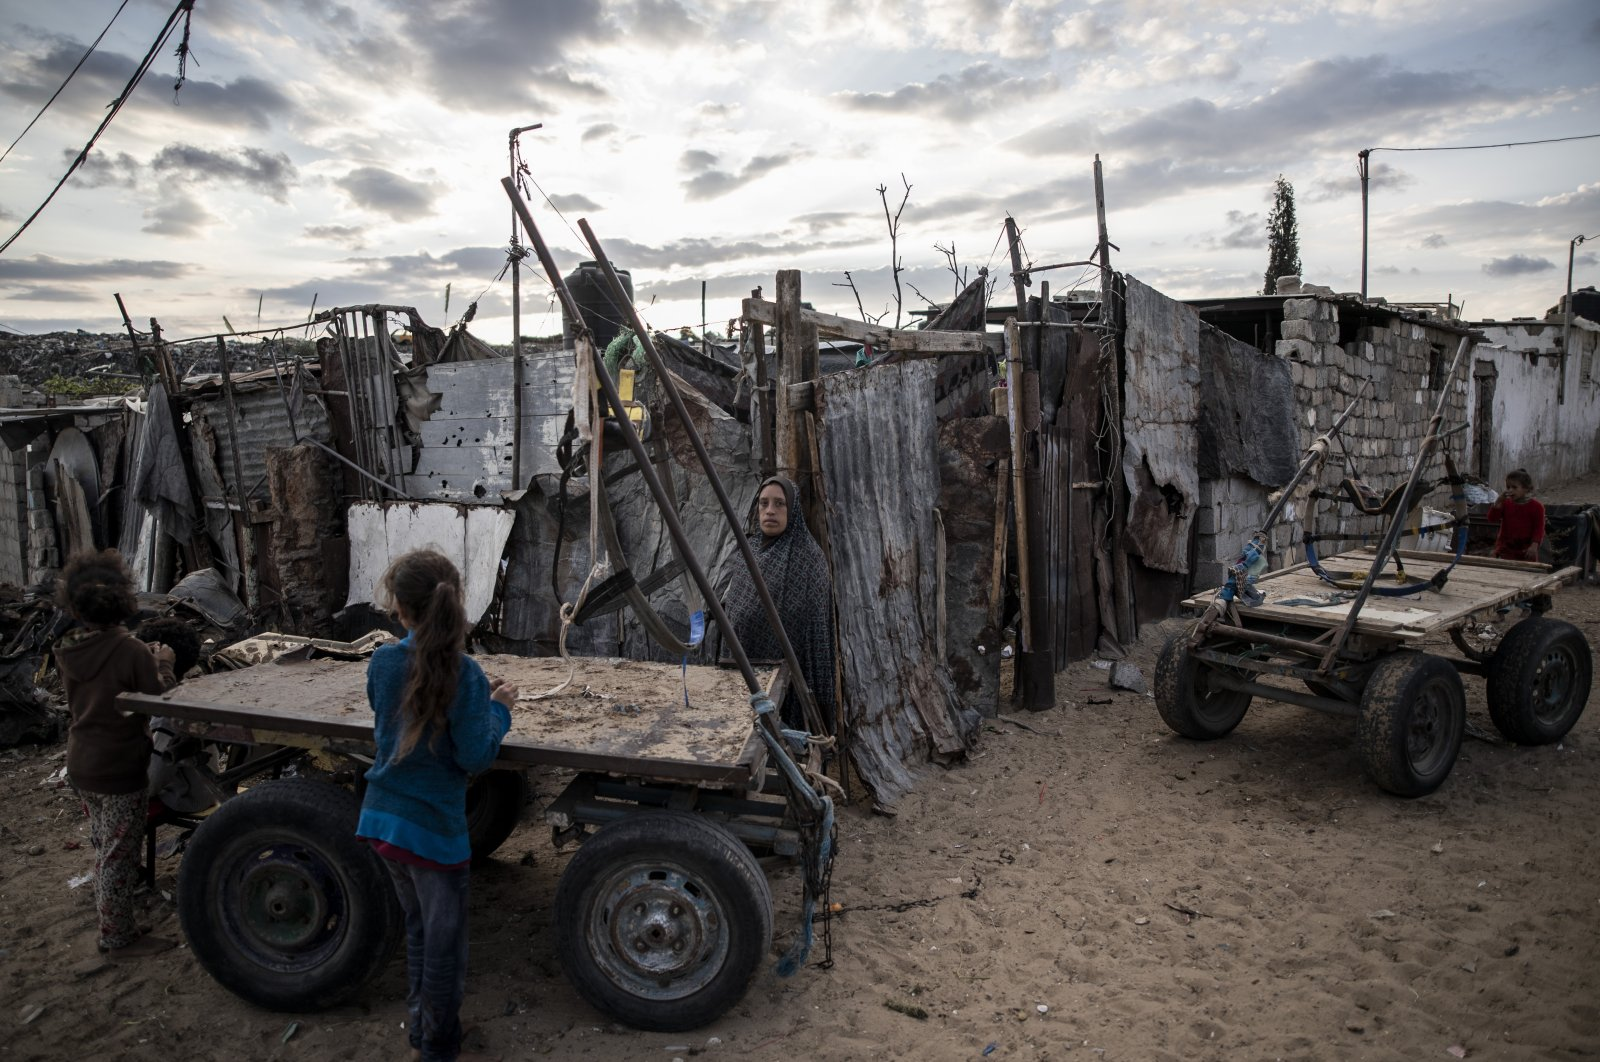 A Palestinian woman stands next to her house in a slum on the outskirts of Khan Younis Refugee Camp, in the southern Gaza Strip, Nov. 25, 2020. (AP Photo)